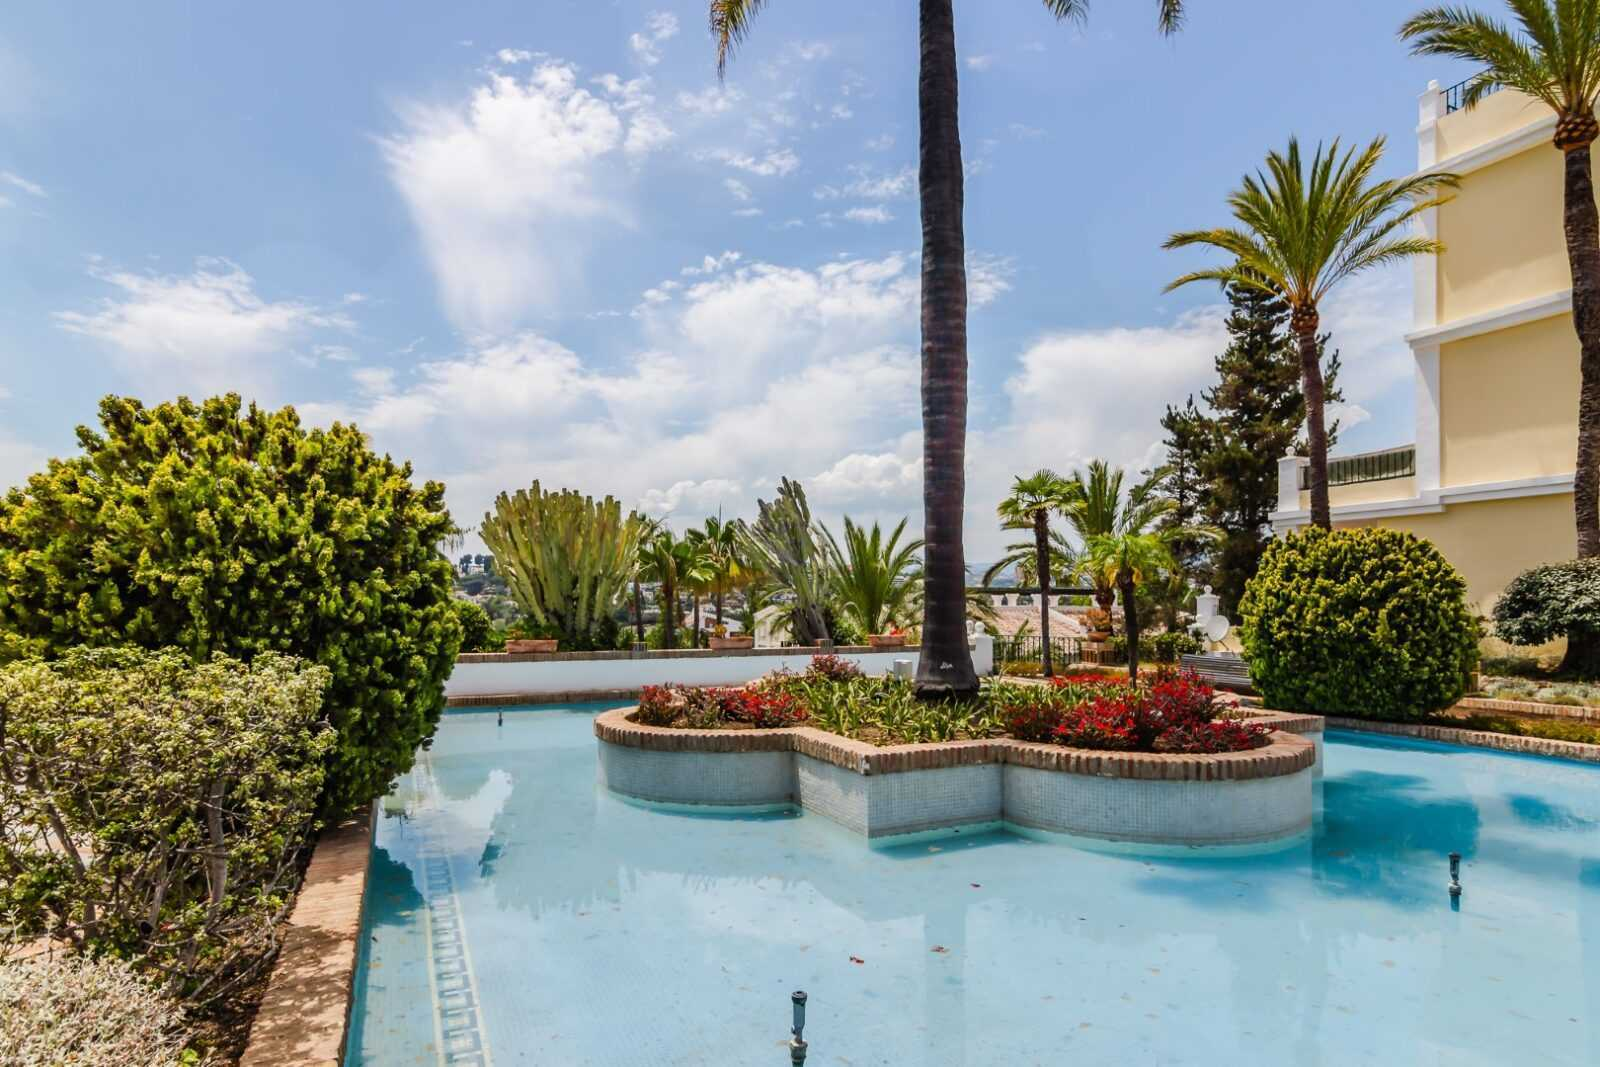 Aloha Gardens 50 NFH 07Urb 04 Large Virtualport3d luxury Properties in Marbella and Costa del Sol